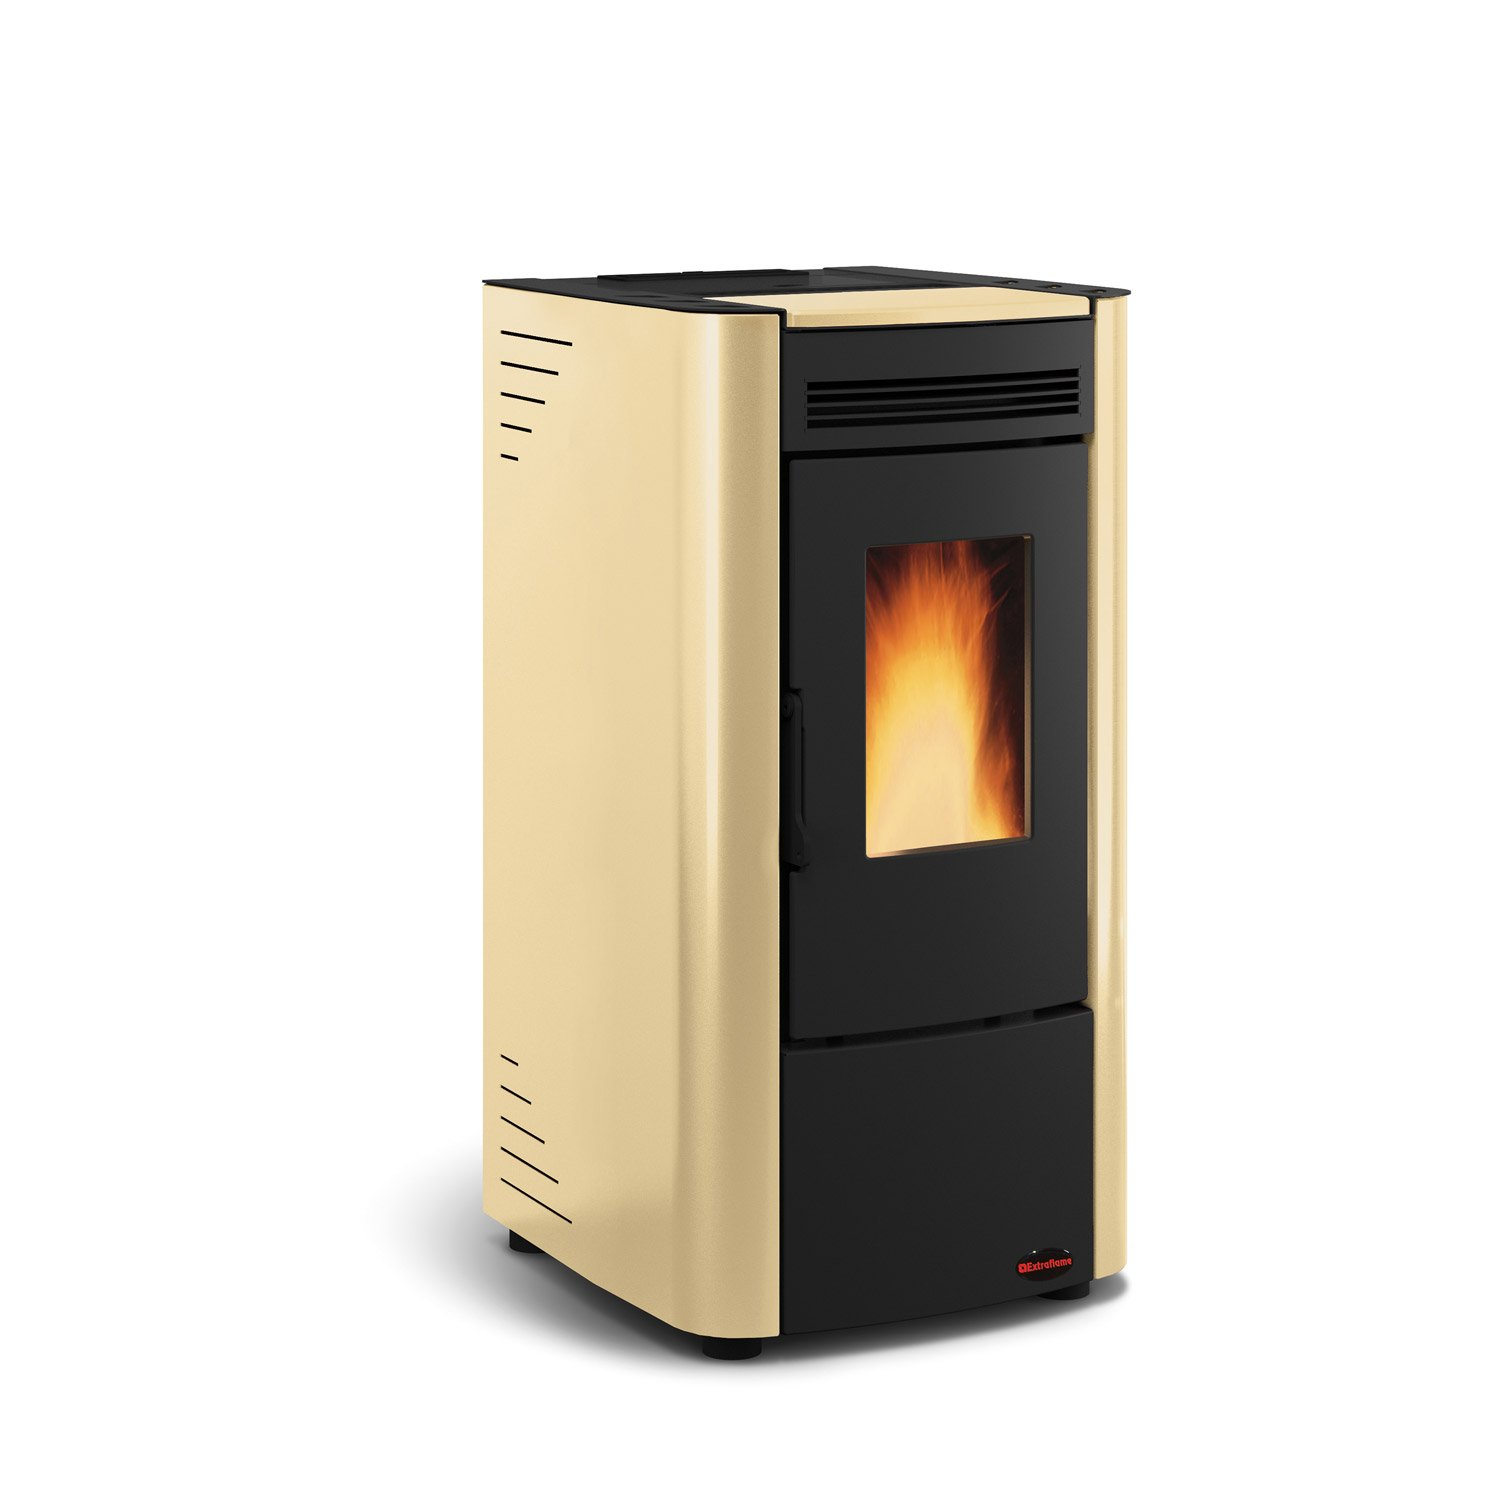 po le granul s extraflame ketty beige 6 3 kw leroy merlin. Black Bedroom Furniture Sets. Home Design Ideas